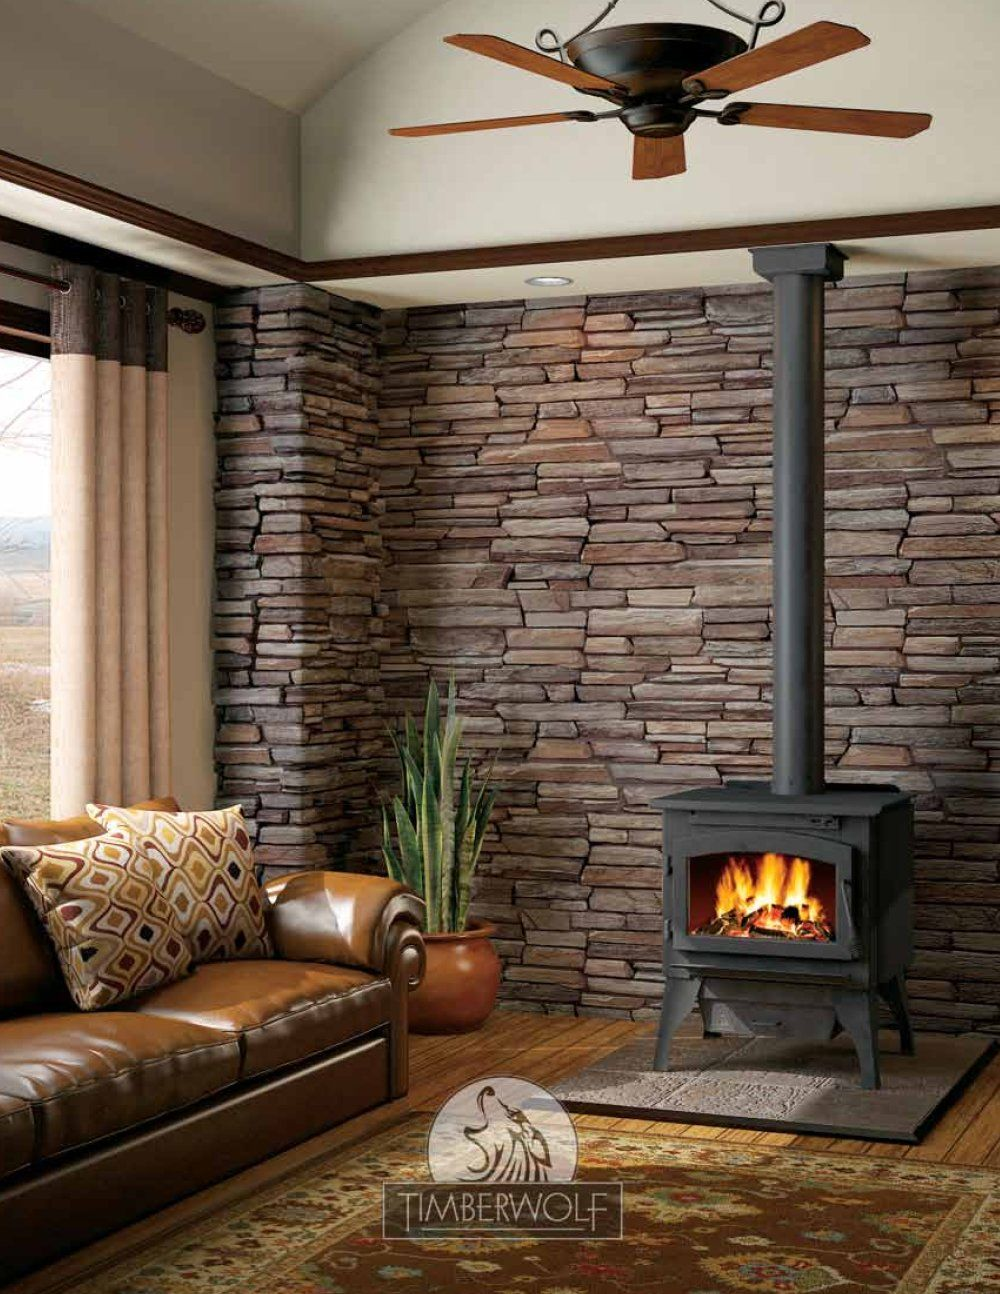 Rustic Room With Fireplace The Couch Needs To Be An